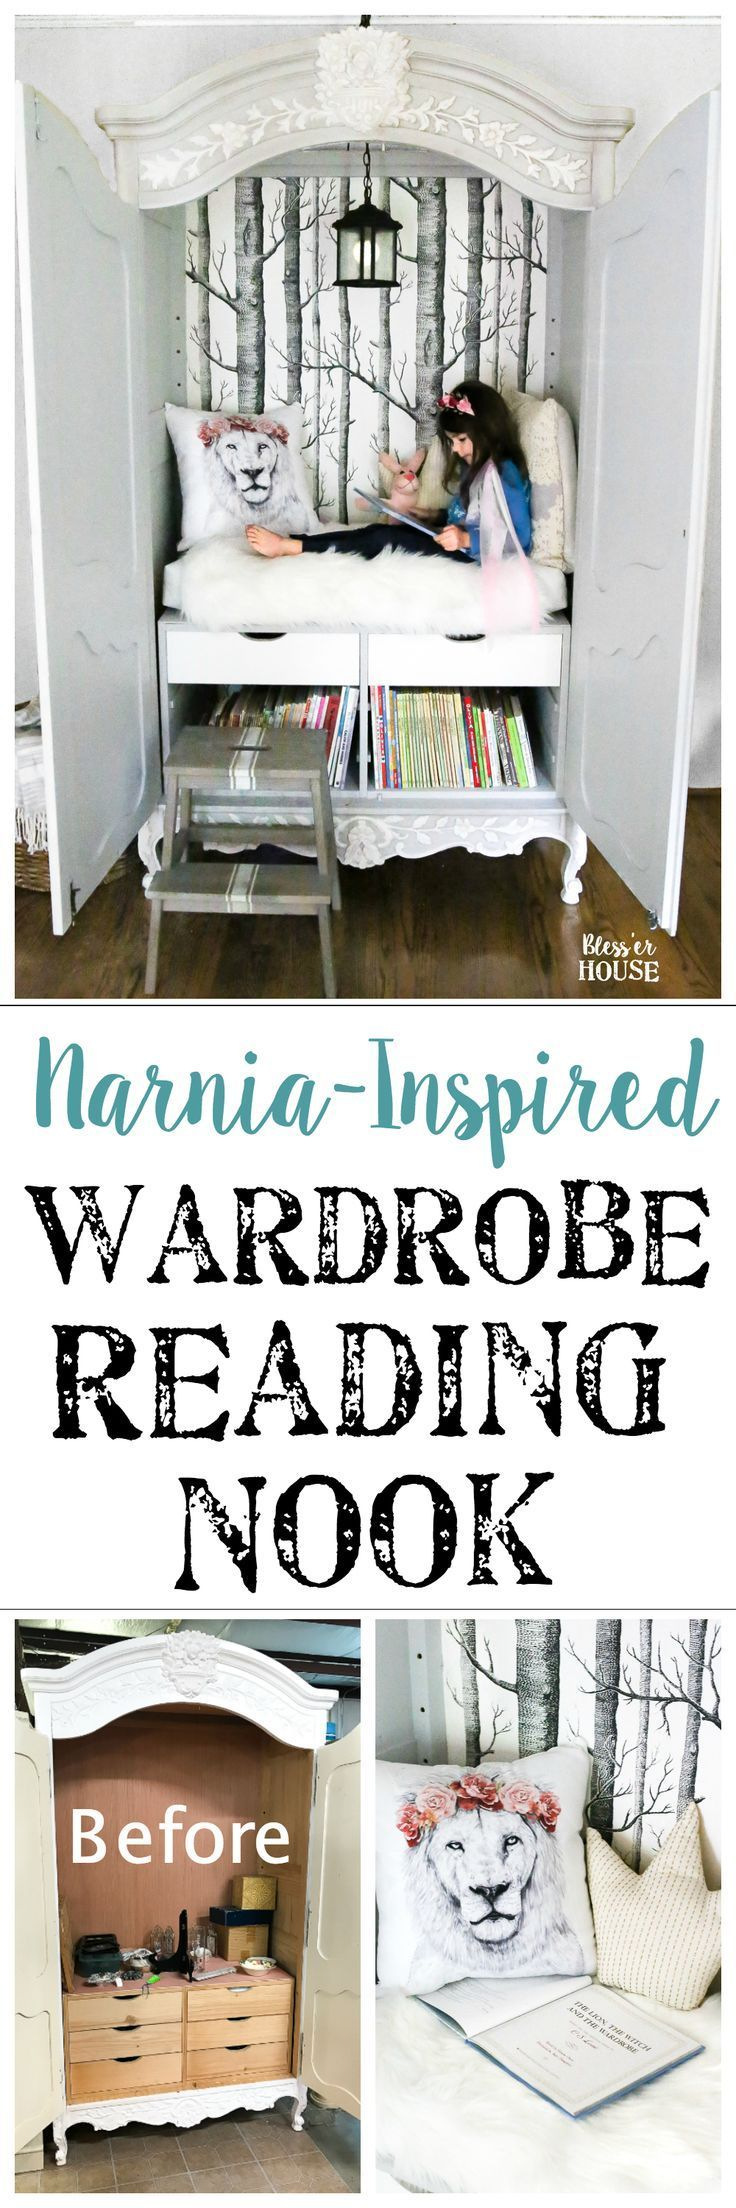 Narnia-inspired wardrobe reading nook / Dress up an old wardrobe cabinet as a cozy place for the kids to read.